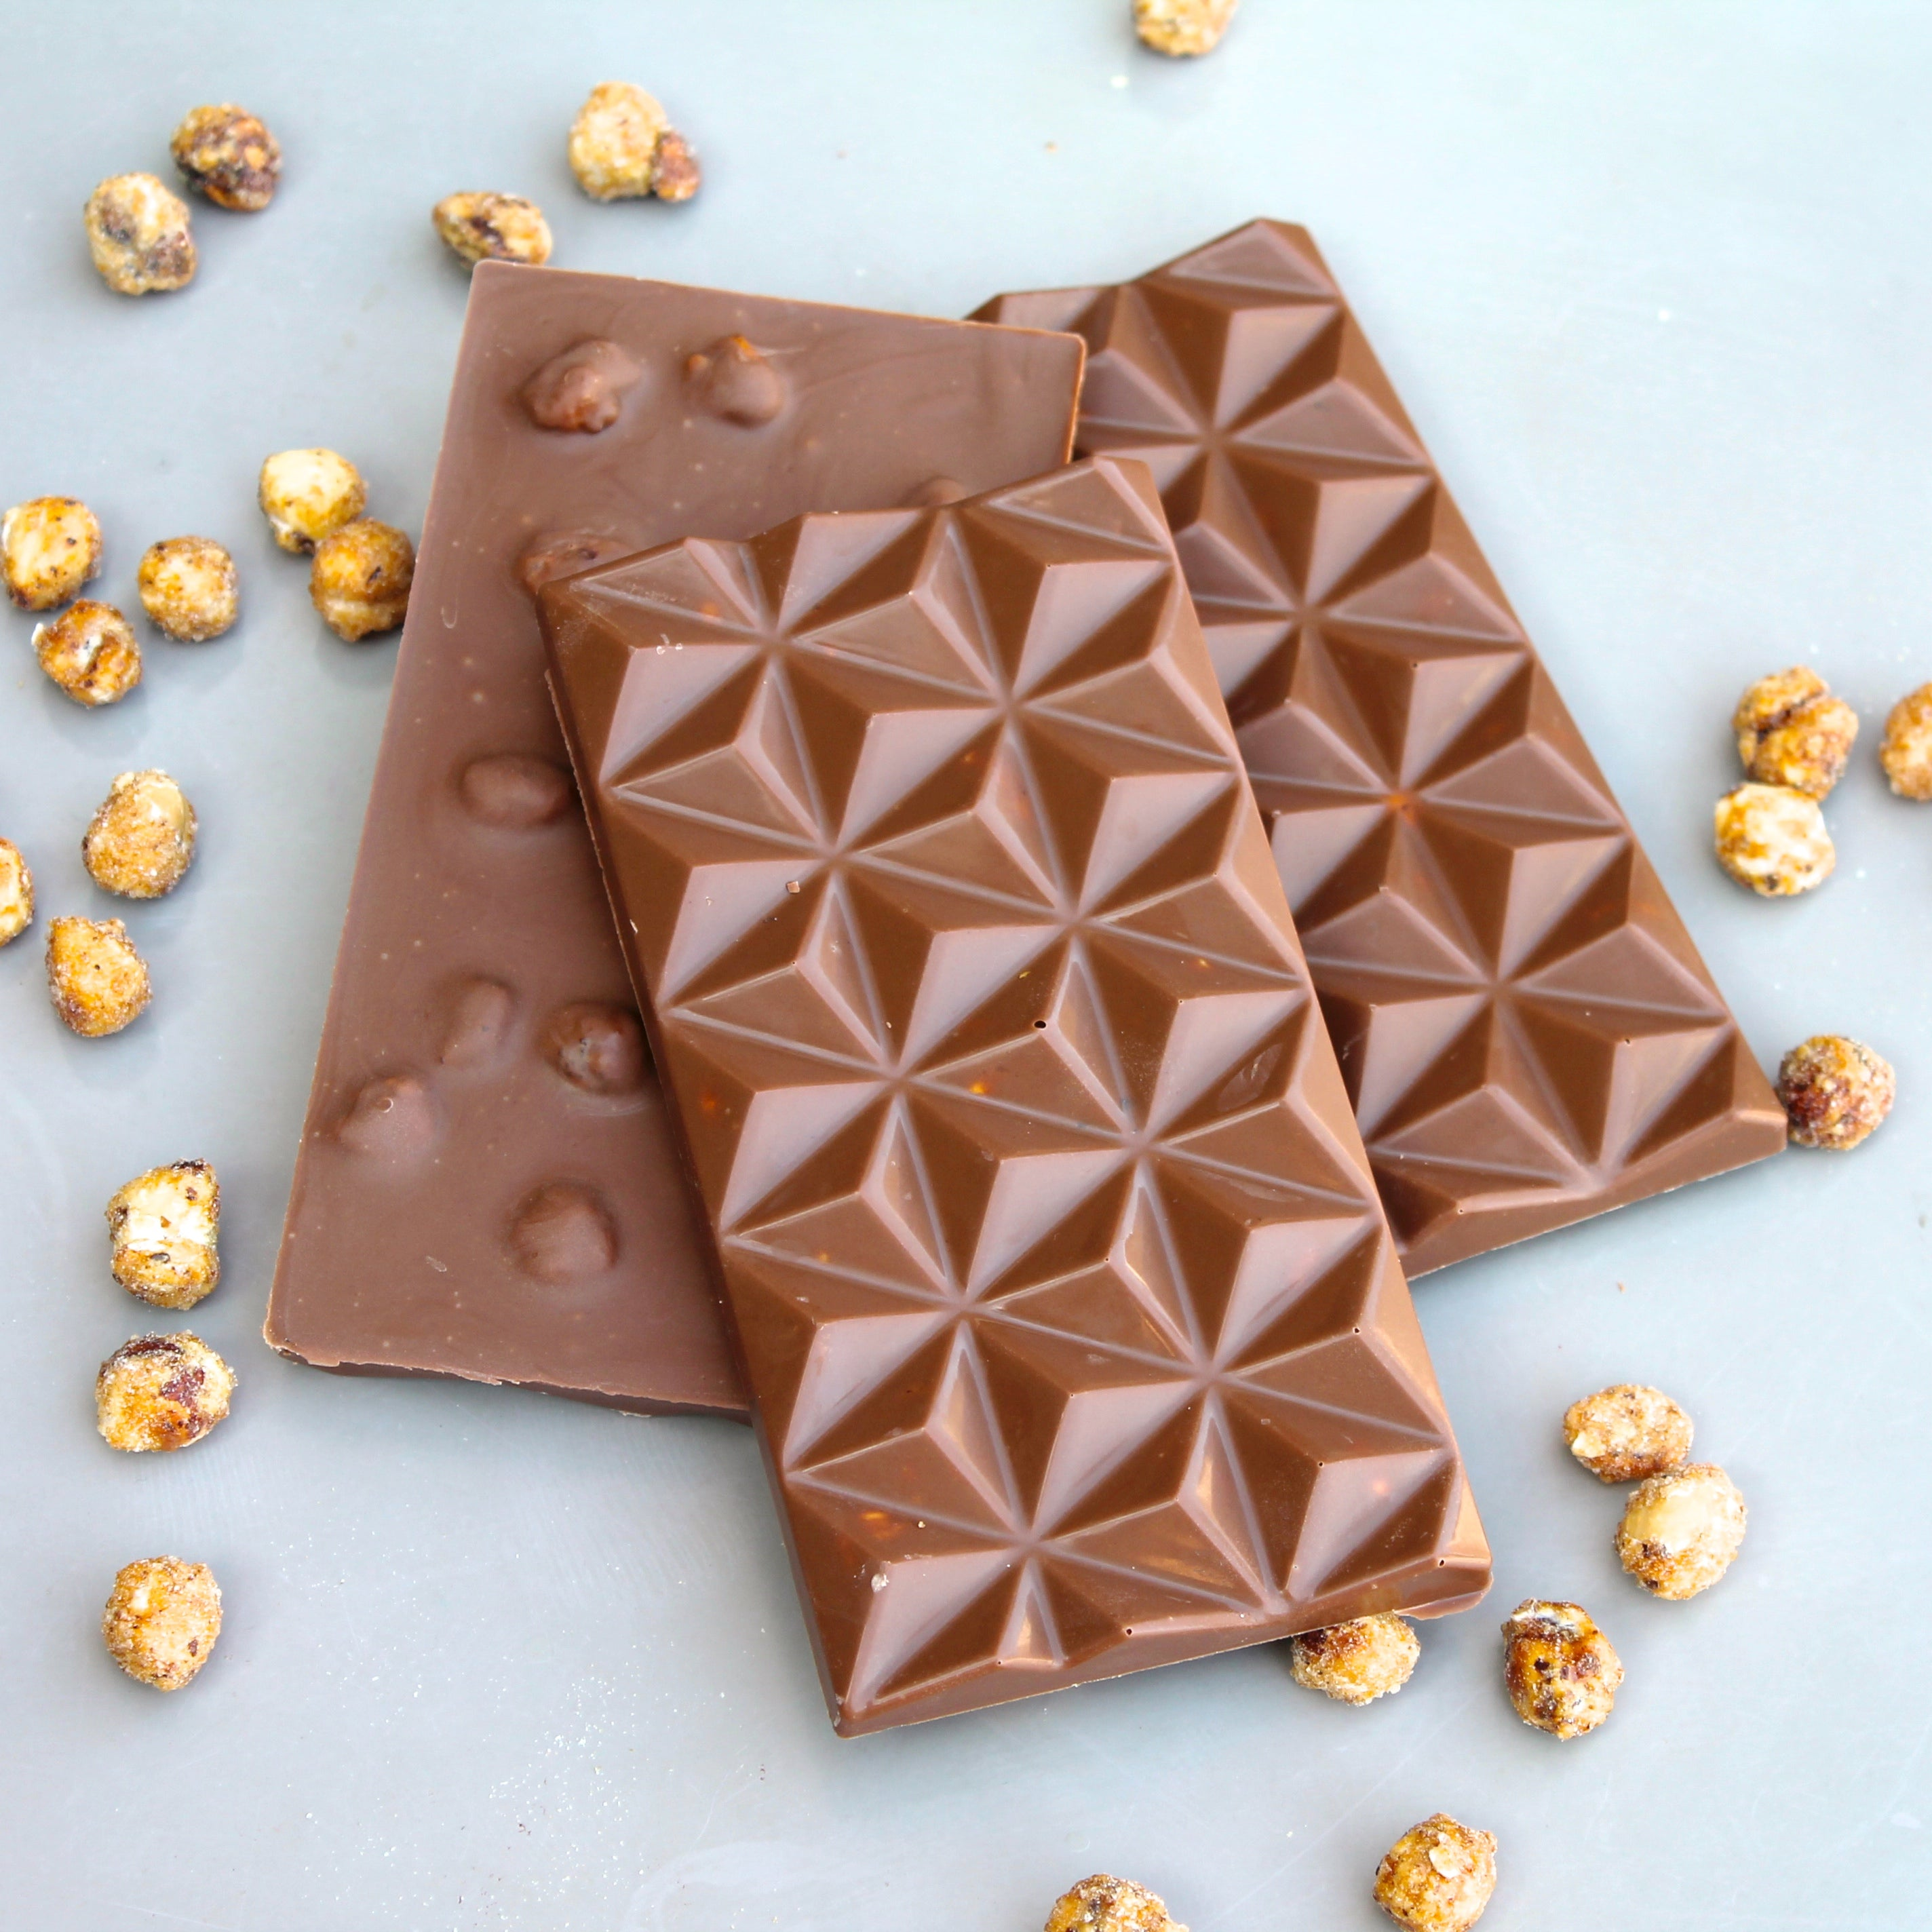 Caramelised Hazelnuts in Milk Chocolate